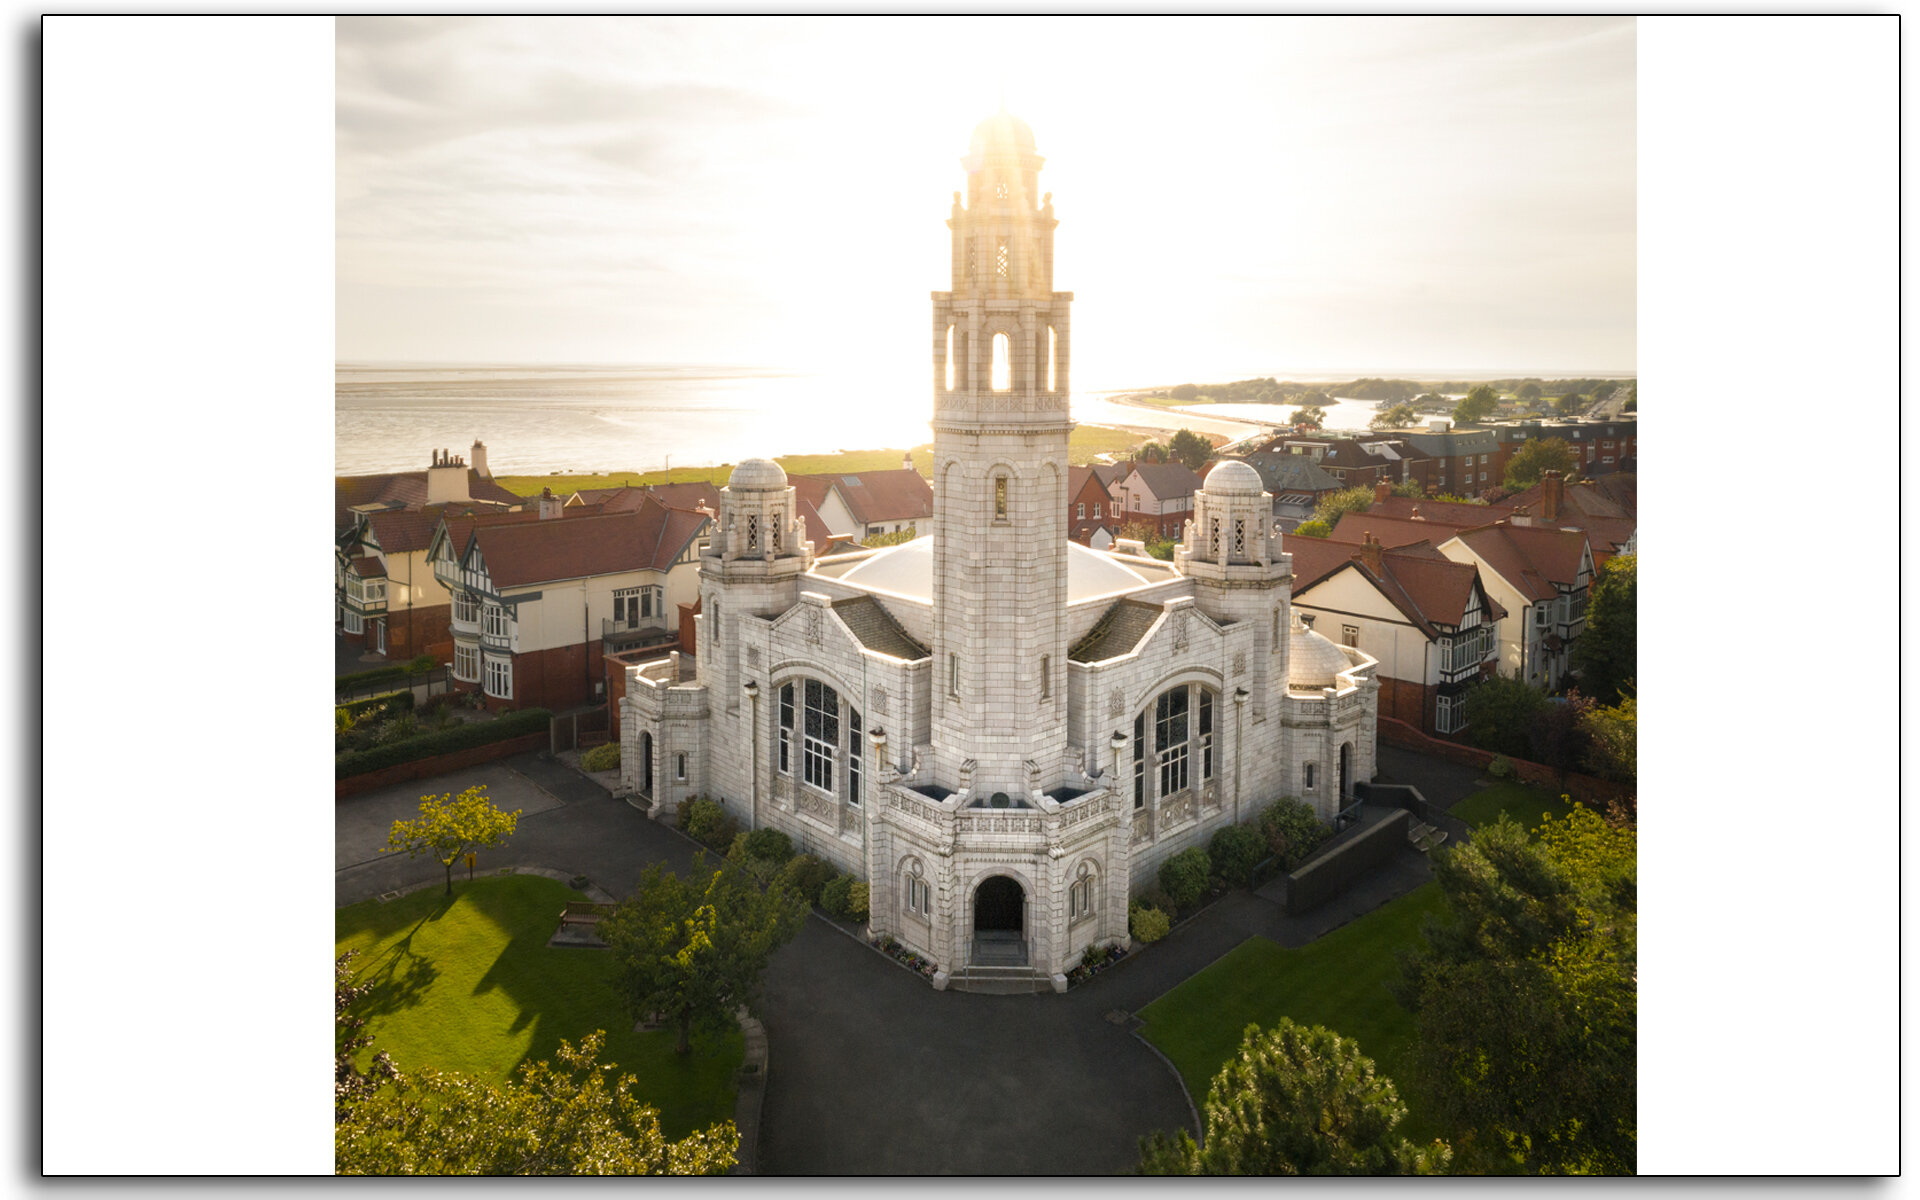 the white church, Ansdell and Fairhaven, Reformed church, Lytham, St Annes.jpg